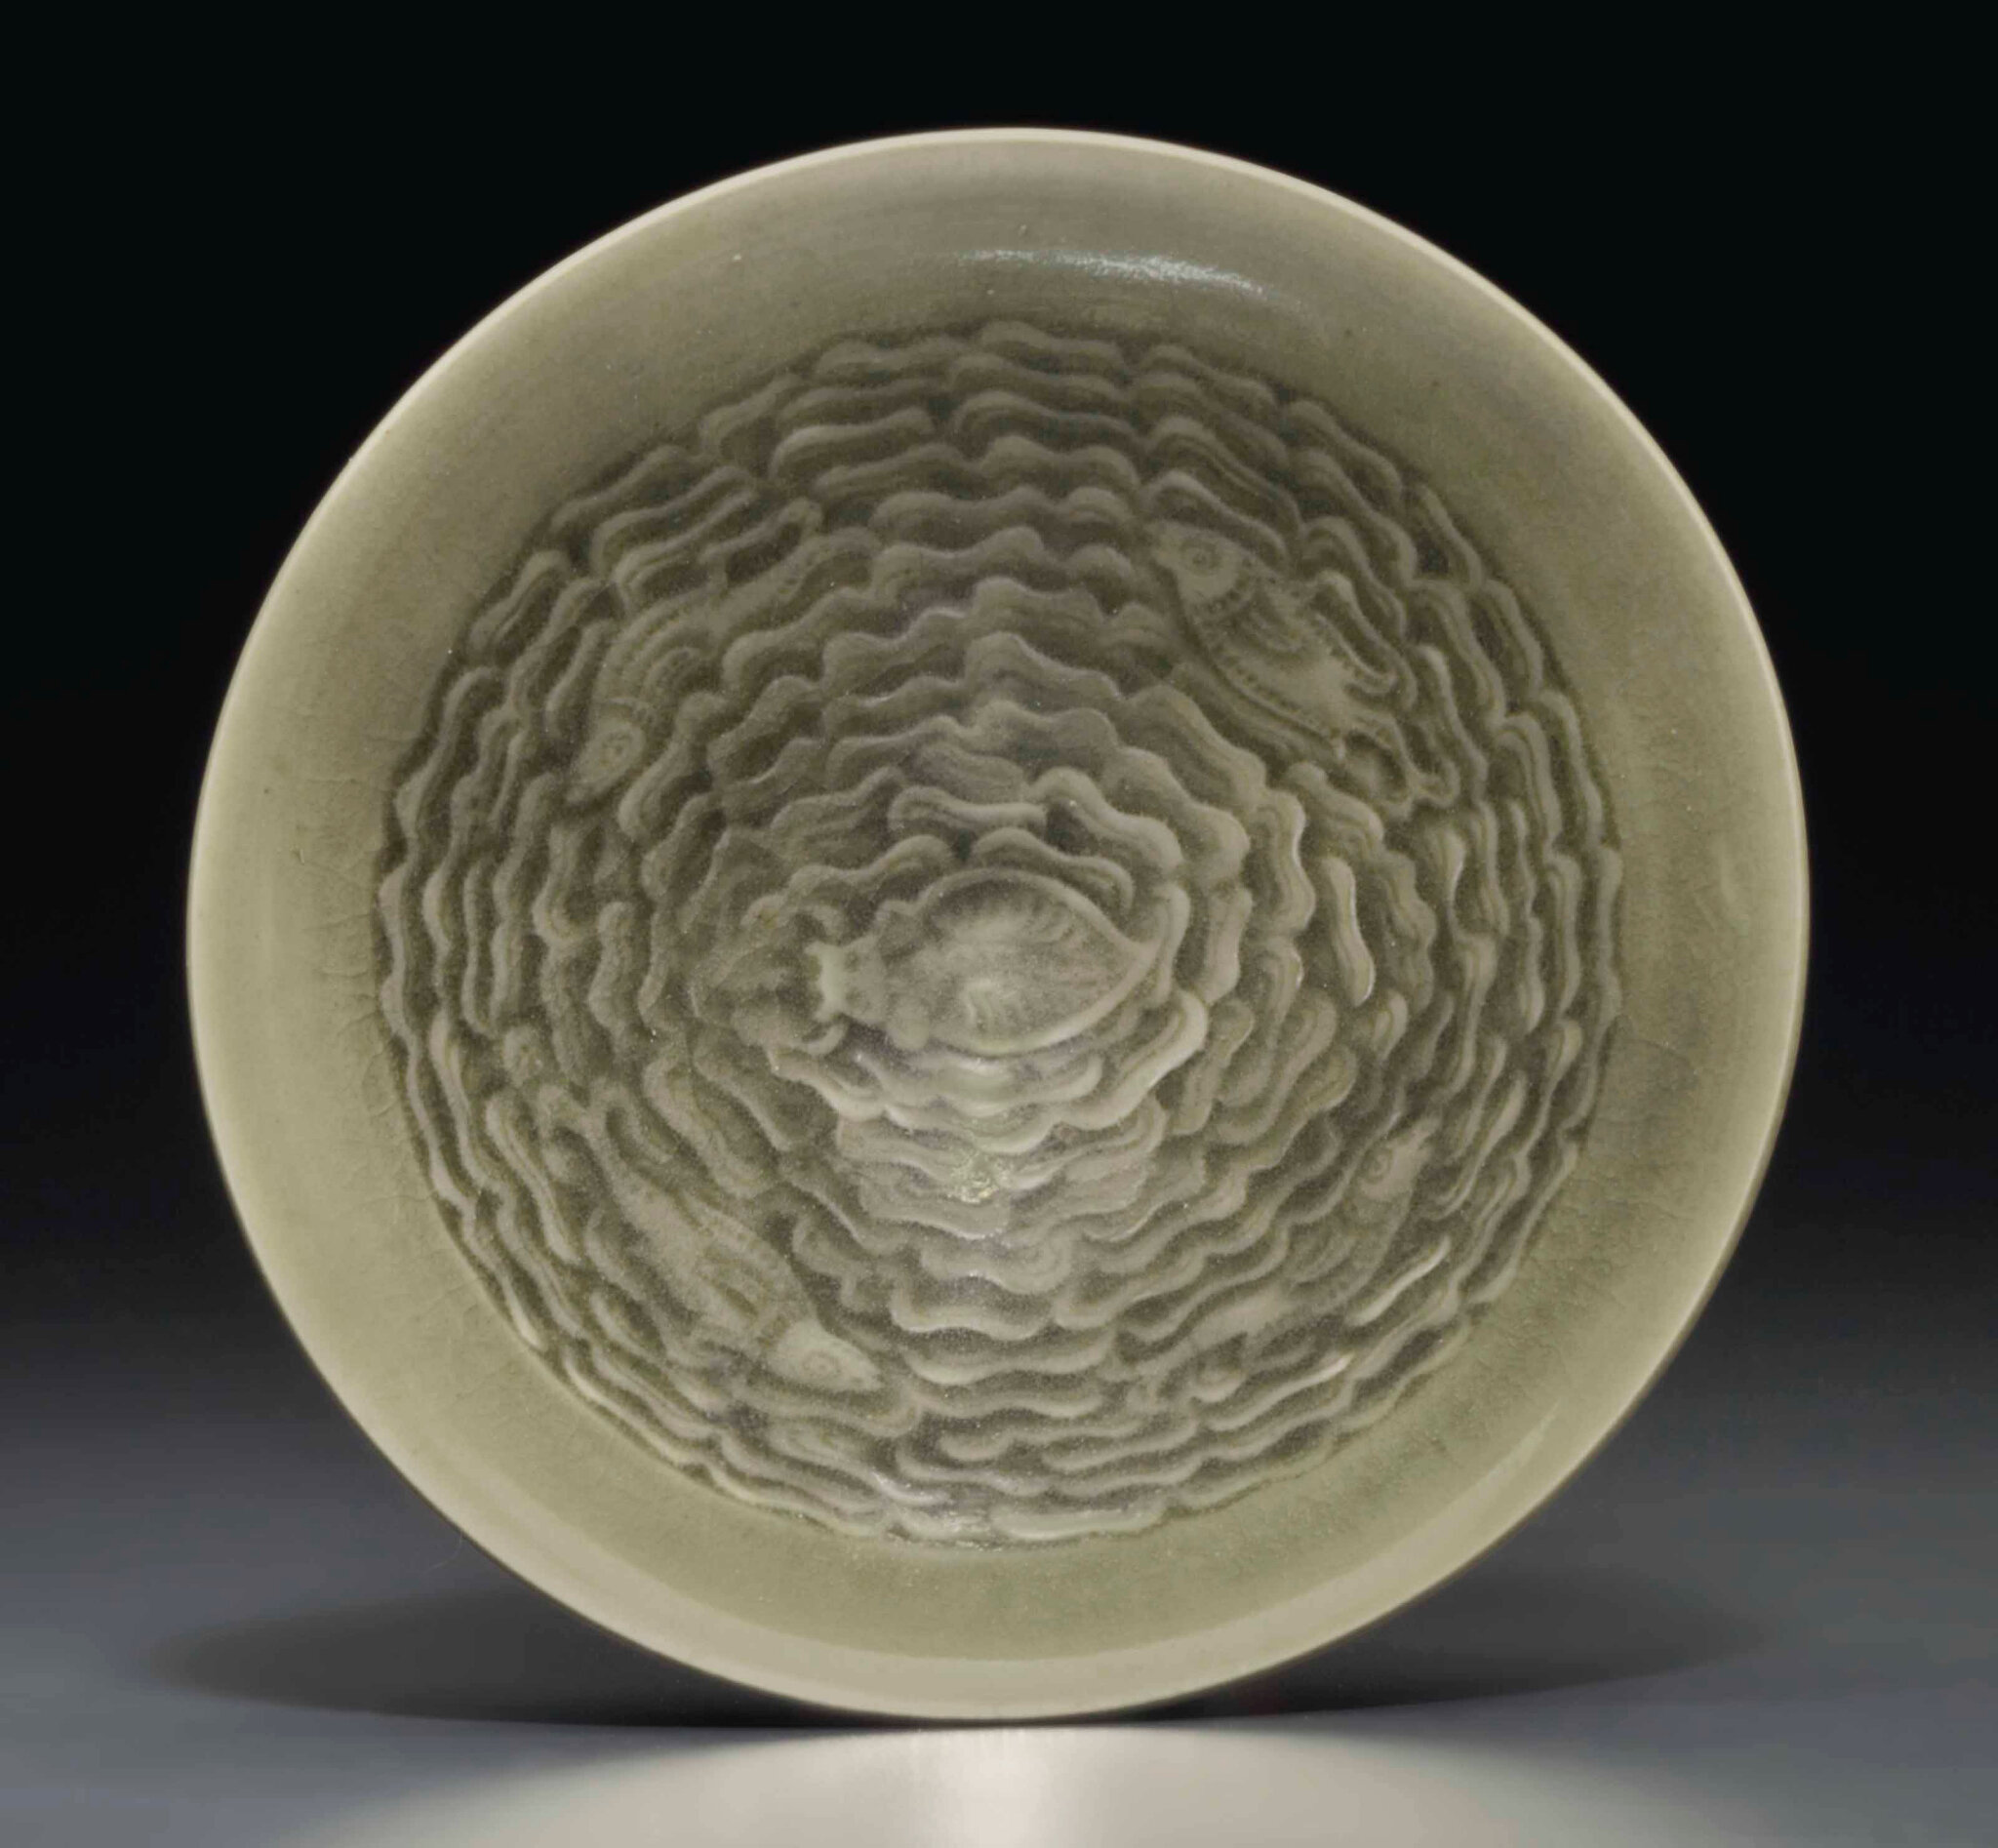 A small Yaozhou celadon molded conical bowl, Northern Song-Jin dynasty, 12th-13th century